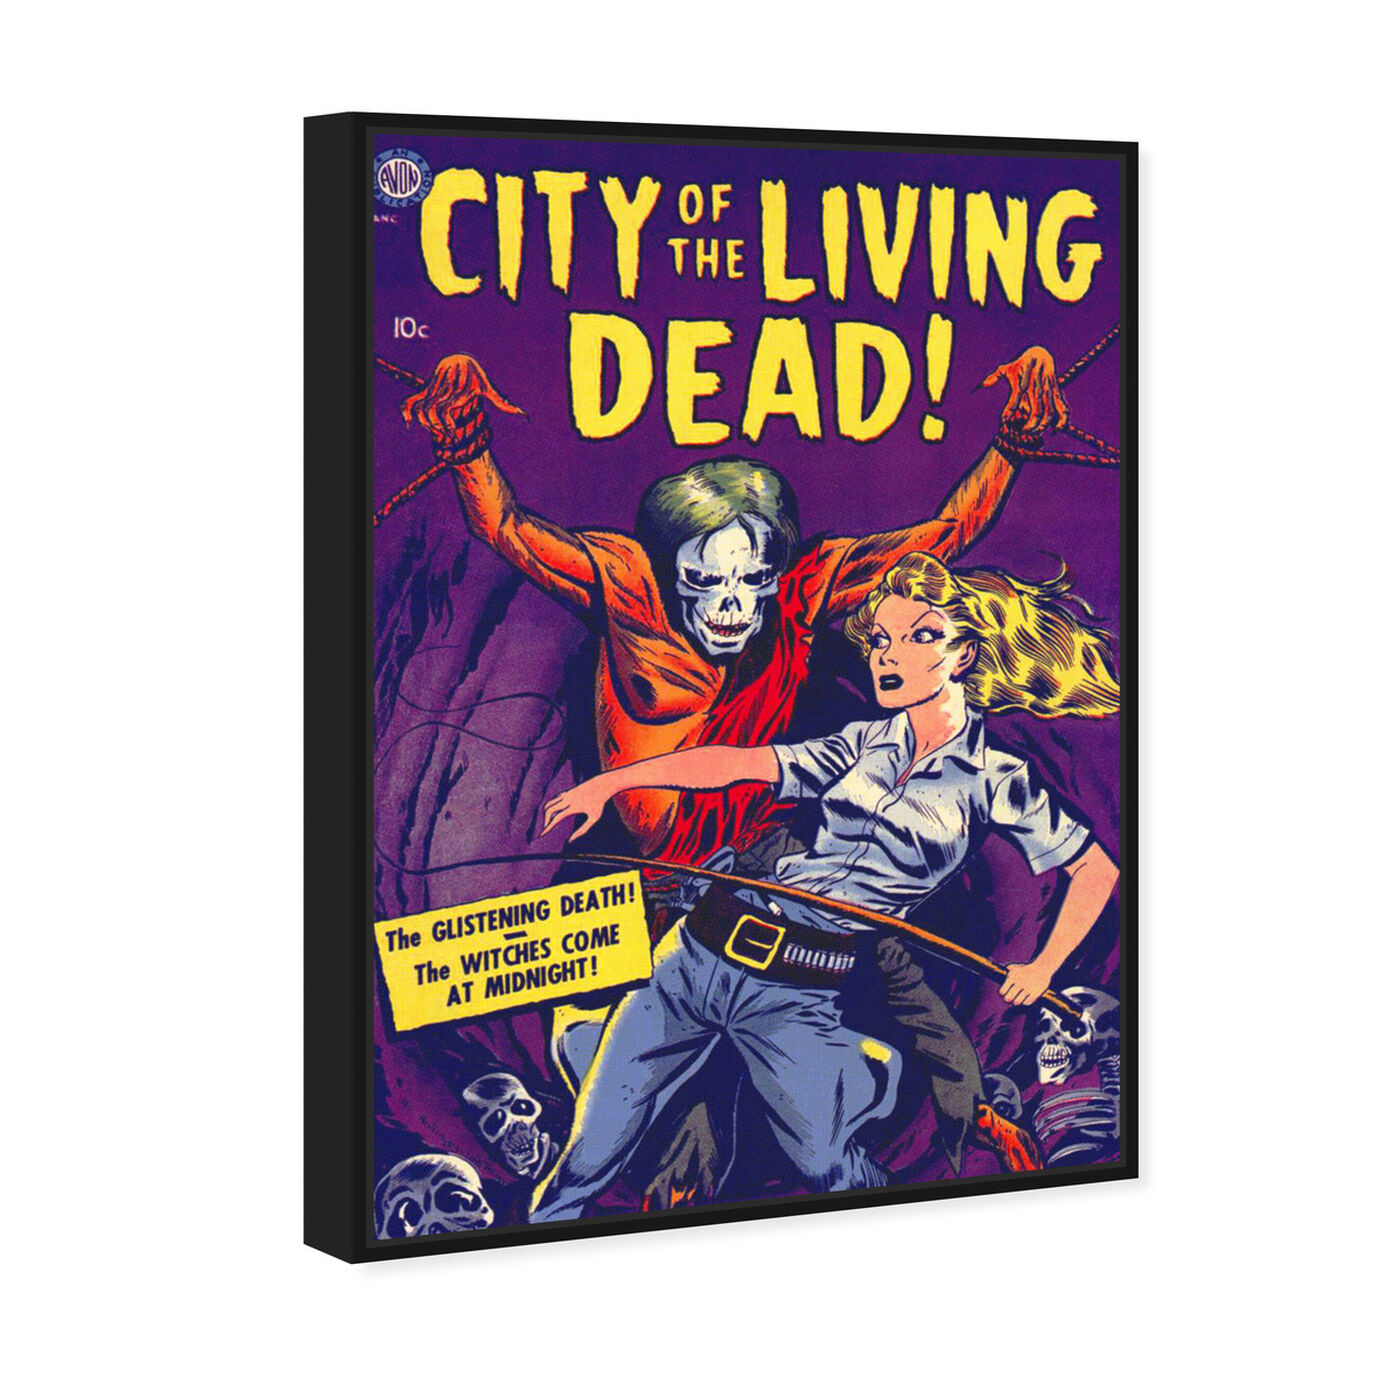 Angled view of City Of The Living Dead featuring advertising and comics art.